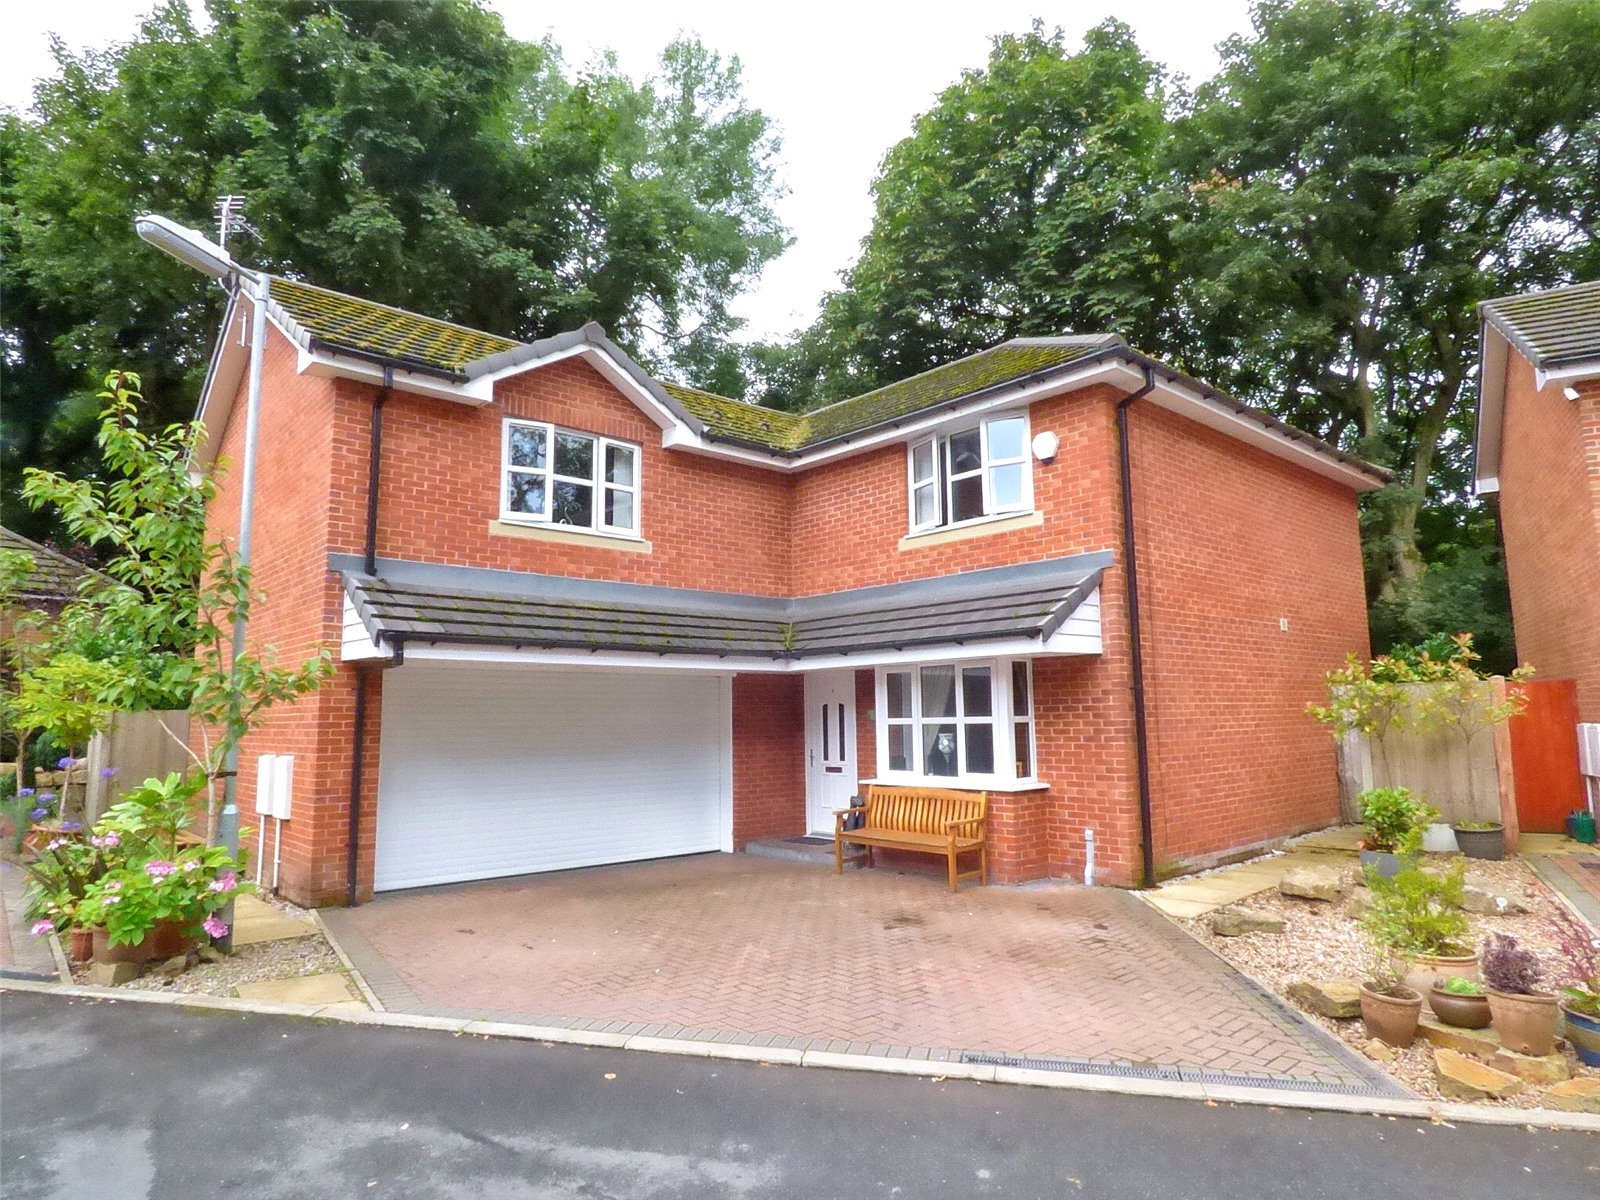 4 Bedrooms Detached House for sale in Crompton Hall, Shaw, Oldham, Greater Manchester, OL2